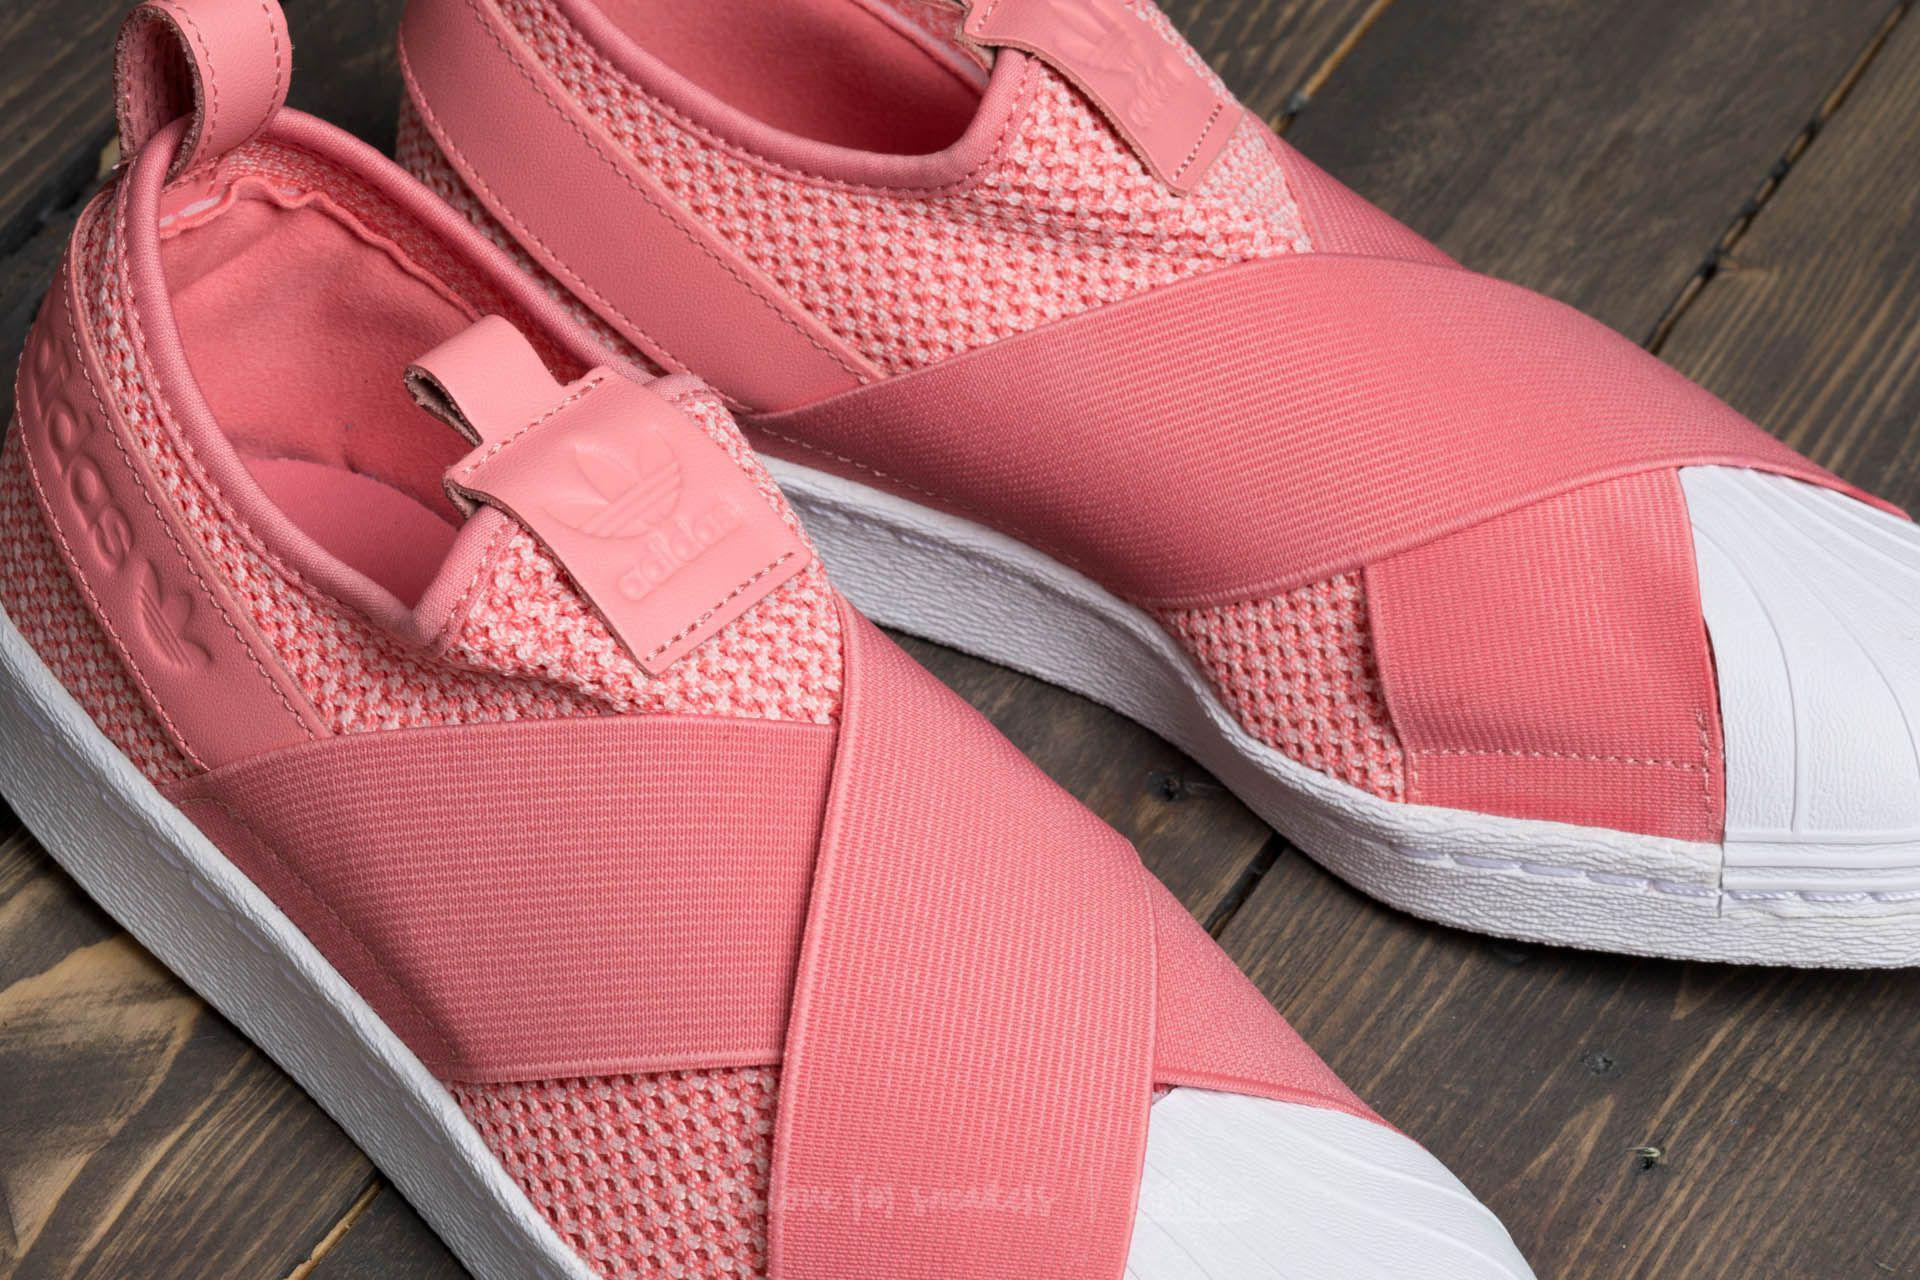 Lyst - adidas Originals Adidas Superstar Slip On W Tactile Rose ... 24a8af537